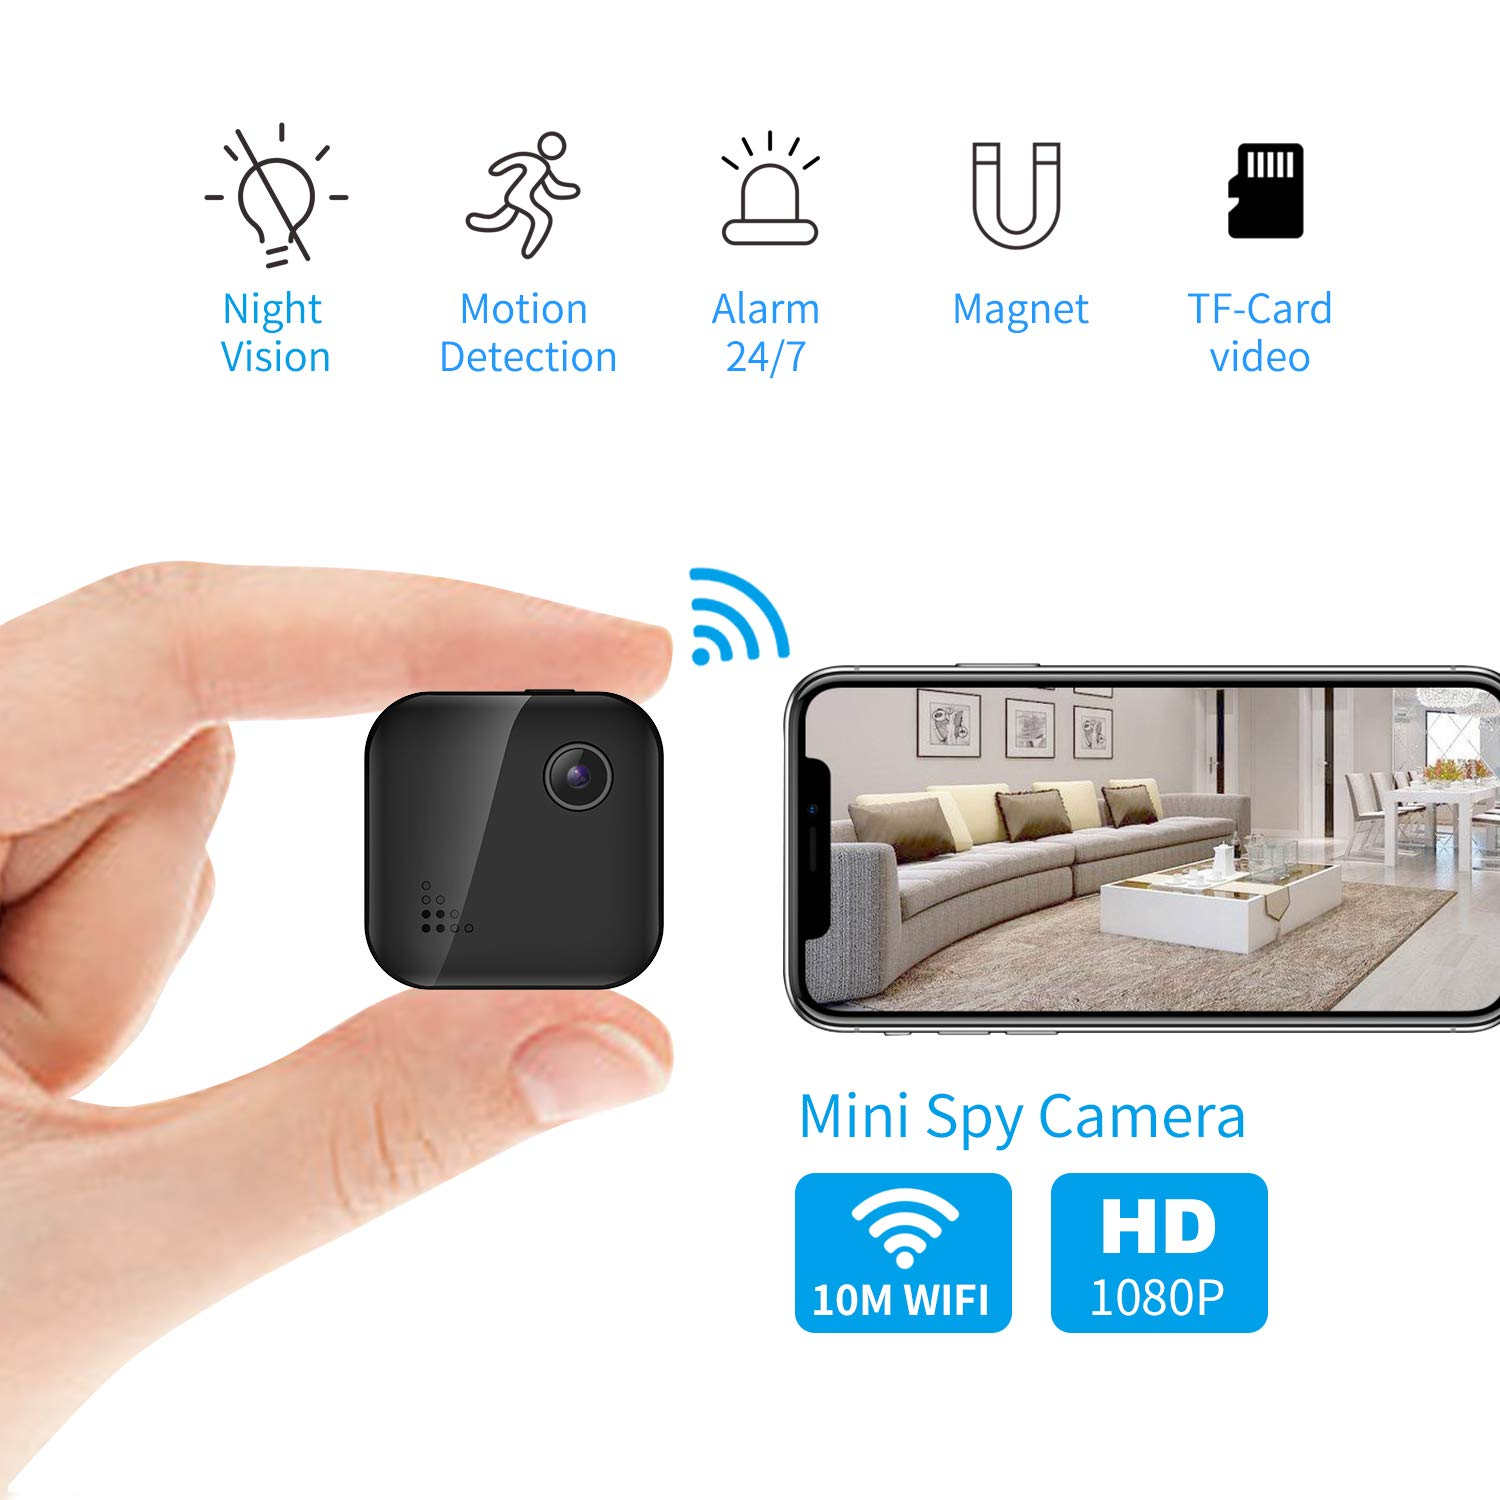 OUCAM Hidden Camera 1080P Mini Spy Camera WiFi Camera with Remote Viewing 380mAH Battery Wireless IP Camera for Baby/Pet/Nanny Cam with Real-Time Video Night Vision, Phone App with Andriod and iOS by OUCAM